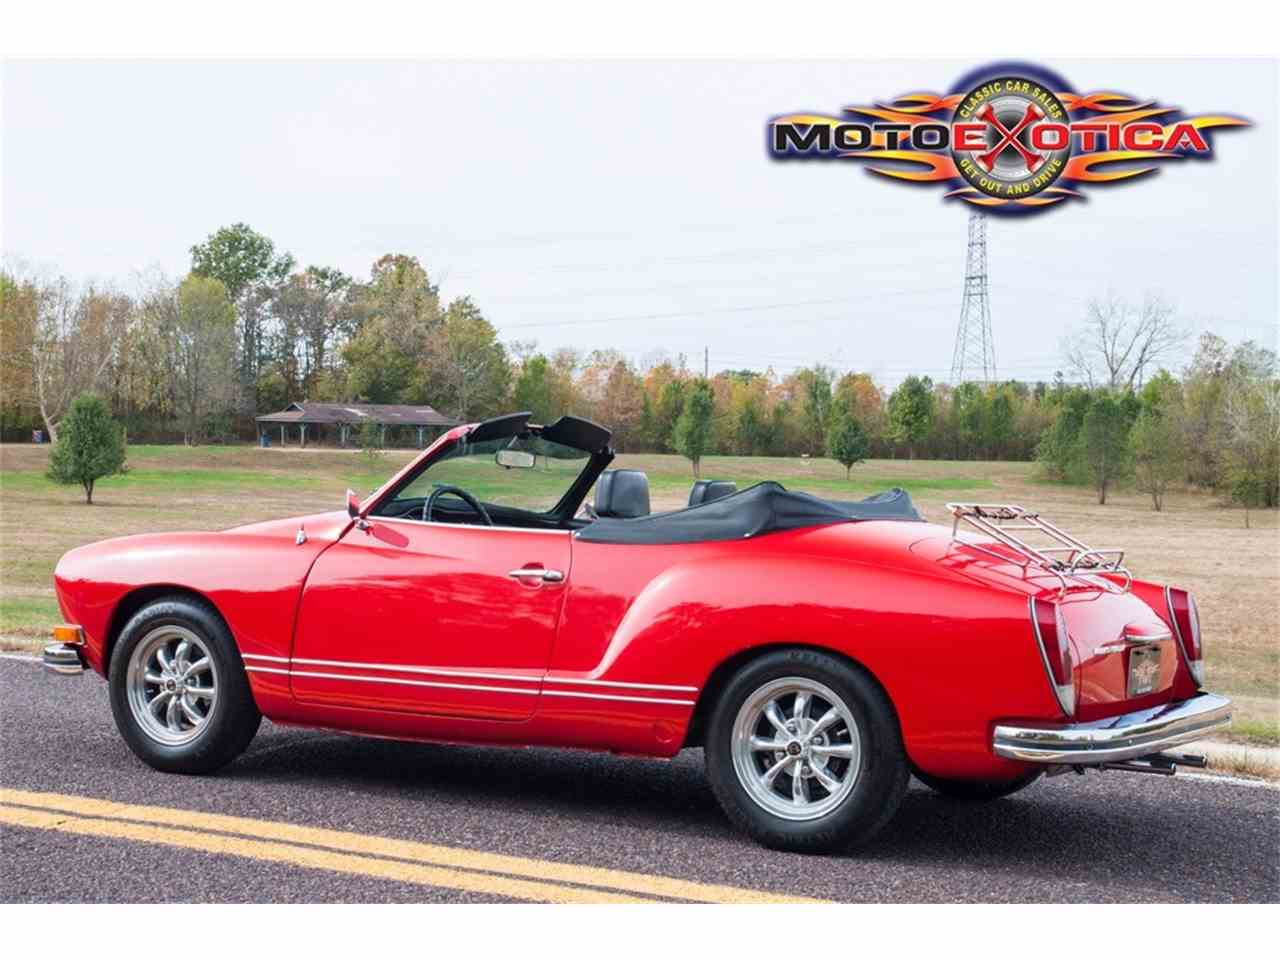 Large Picture of Classic '72 Karmann Ghia located in Missouri - $21,900.00 Offered by MotoeXotica Classic Cars - MB4C